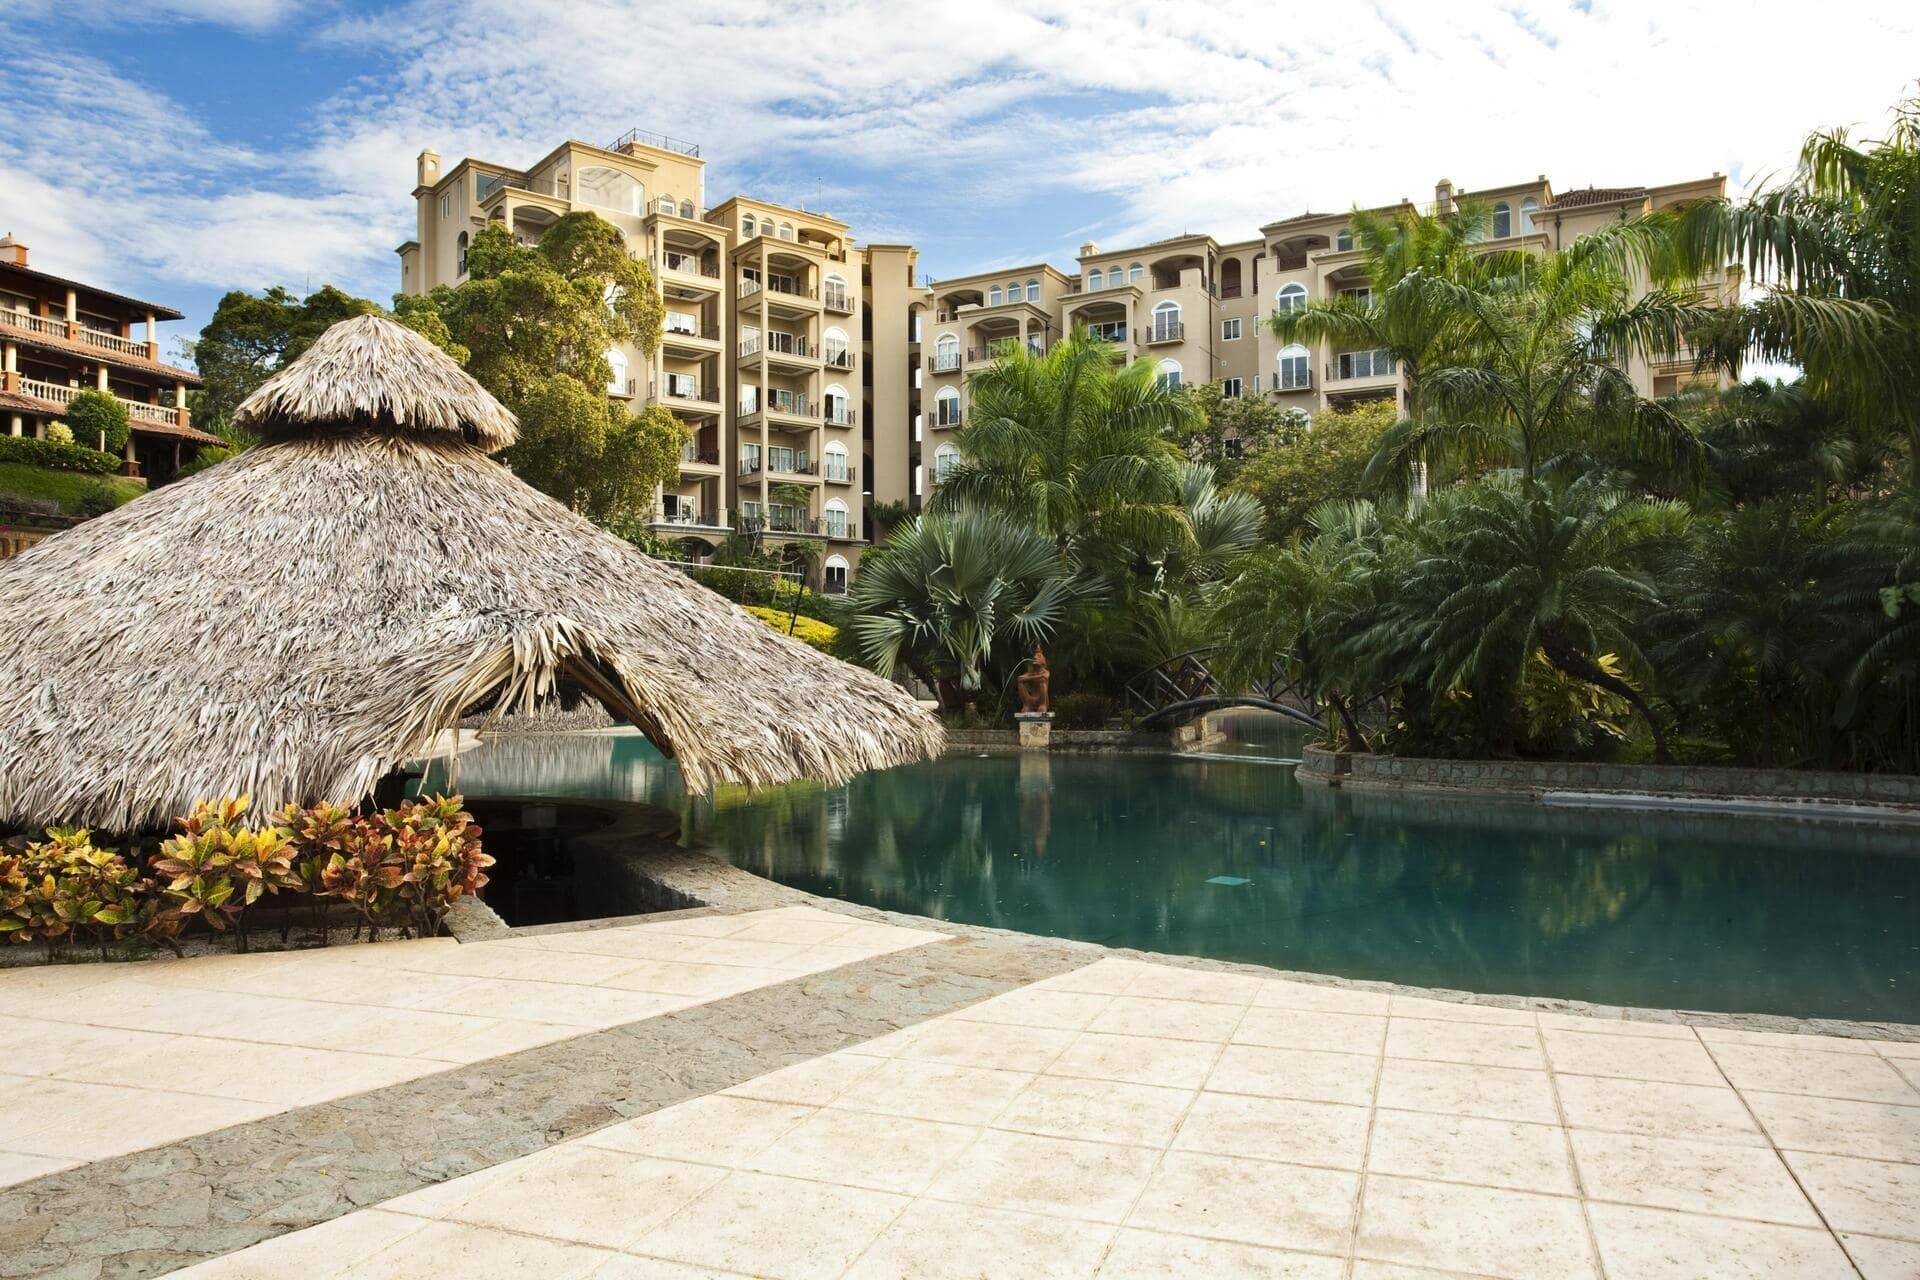 Matapalo 104-Luxury 2 BR Poolside Condo At The Diria Resort-SOLD!